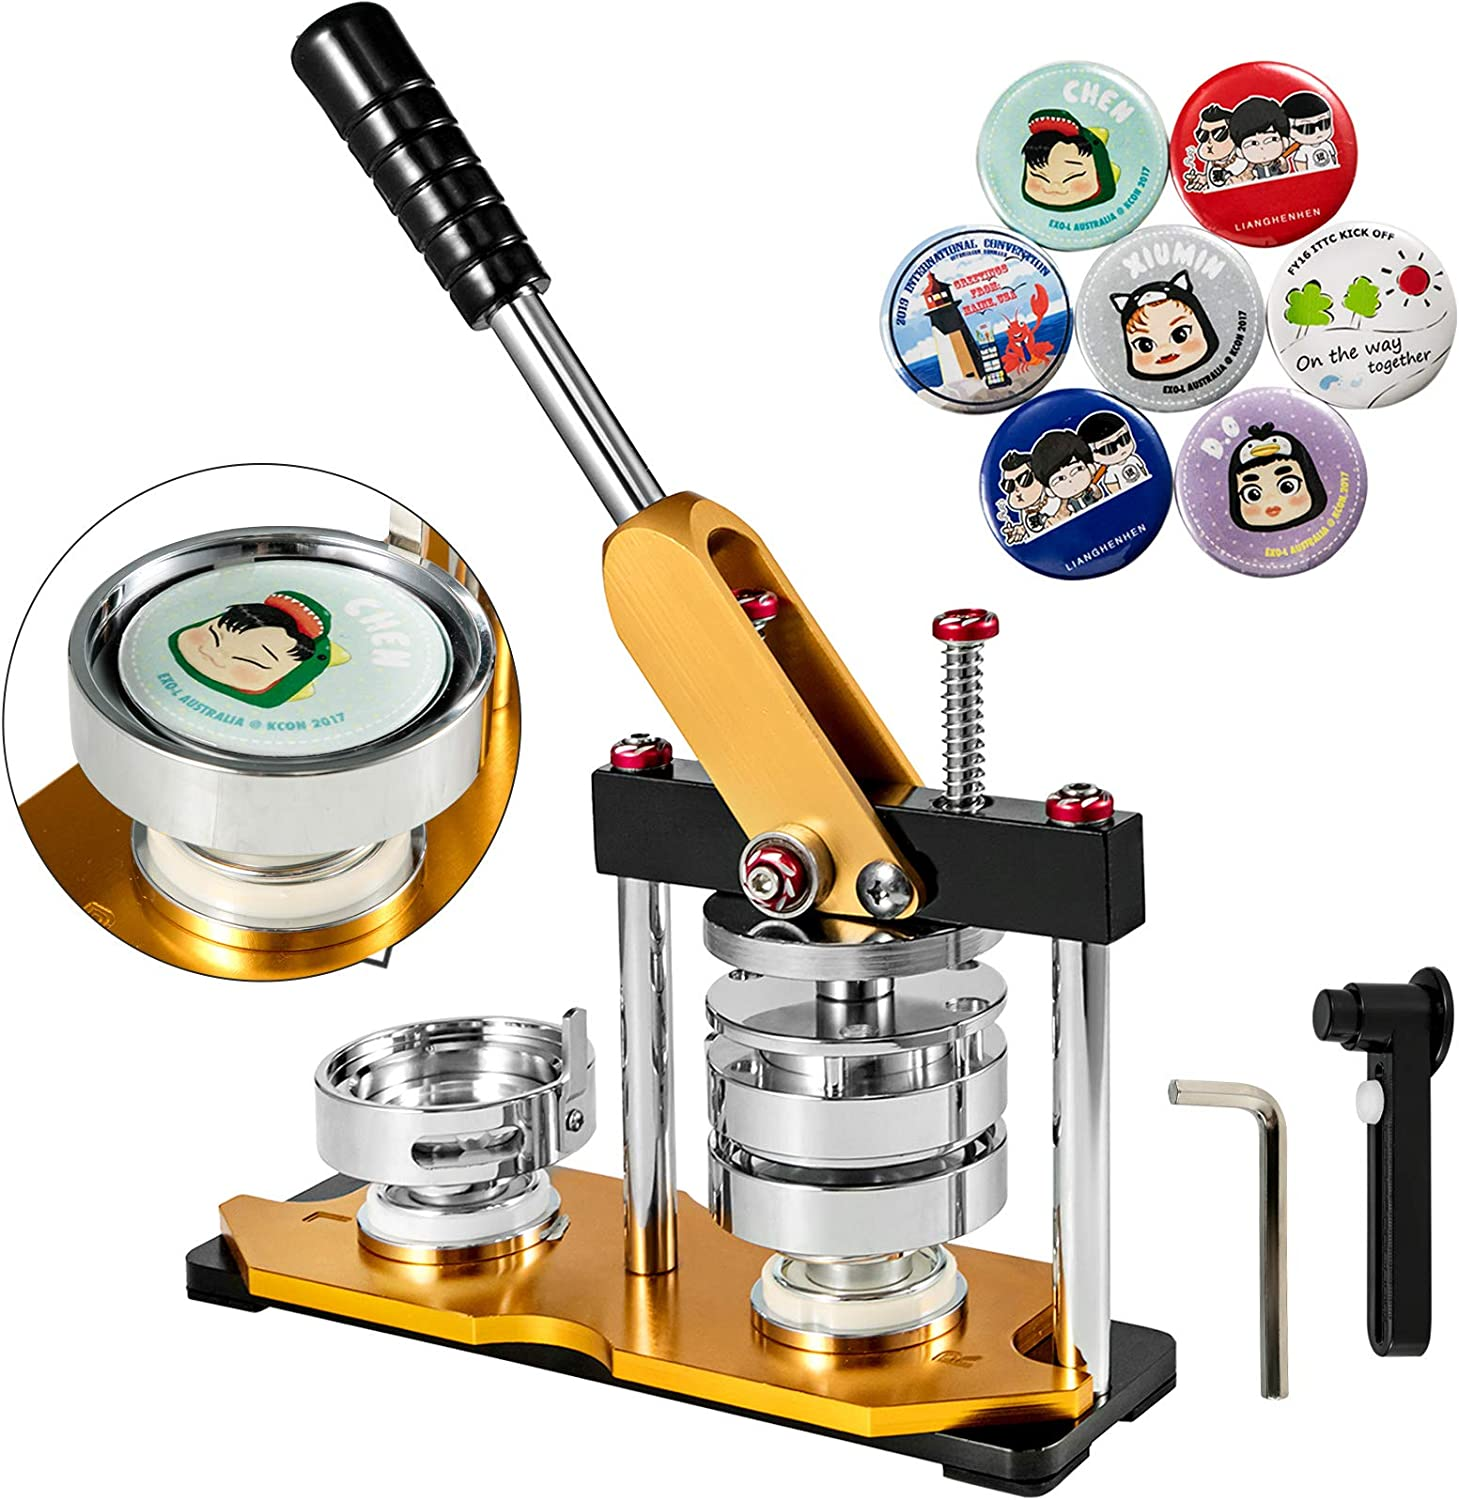 VEVOR Button Maker 75mm Pu Limited Special Price Rotate mart 3inch Badge